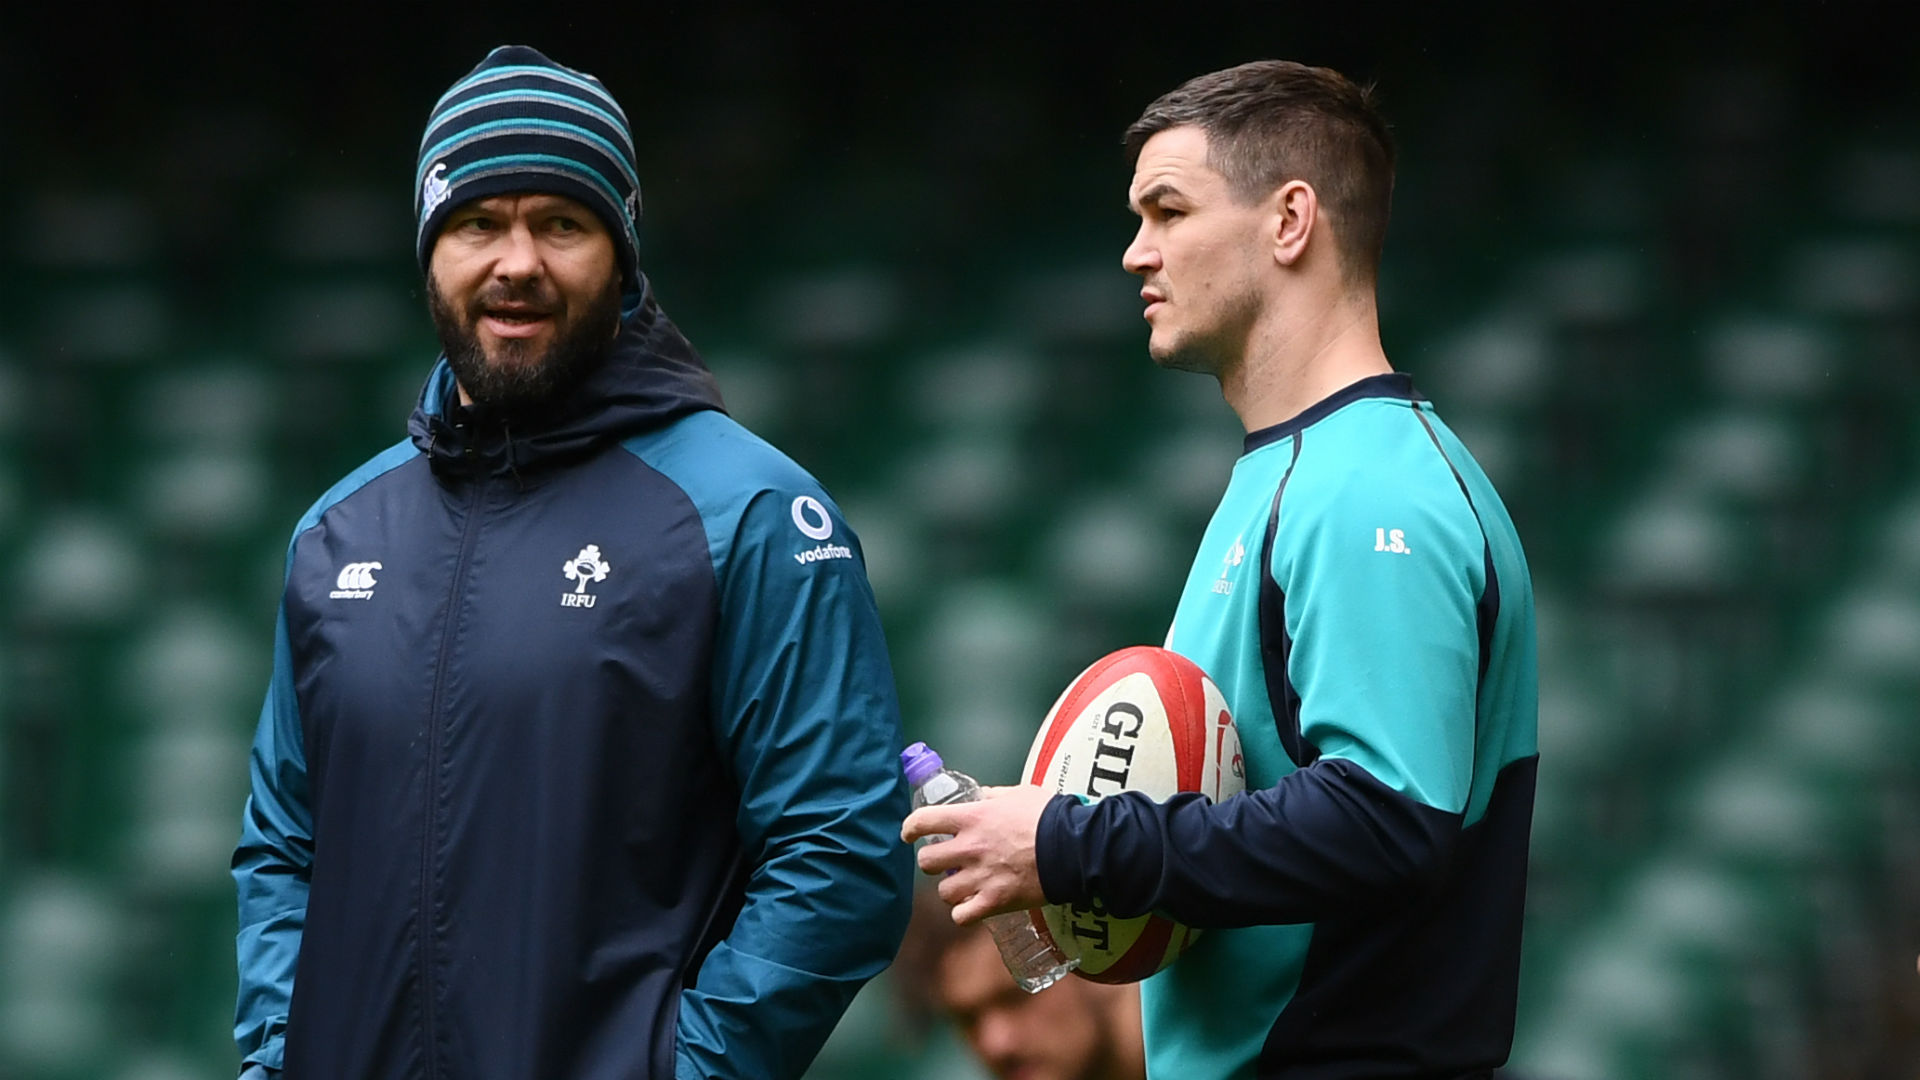 Andy Farrell has called up five uncapped players into his first Ireland squad, with Johnny Sexton confirmed as the team's captain.